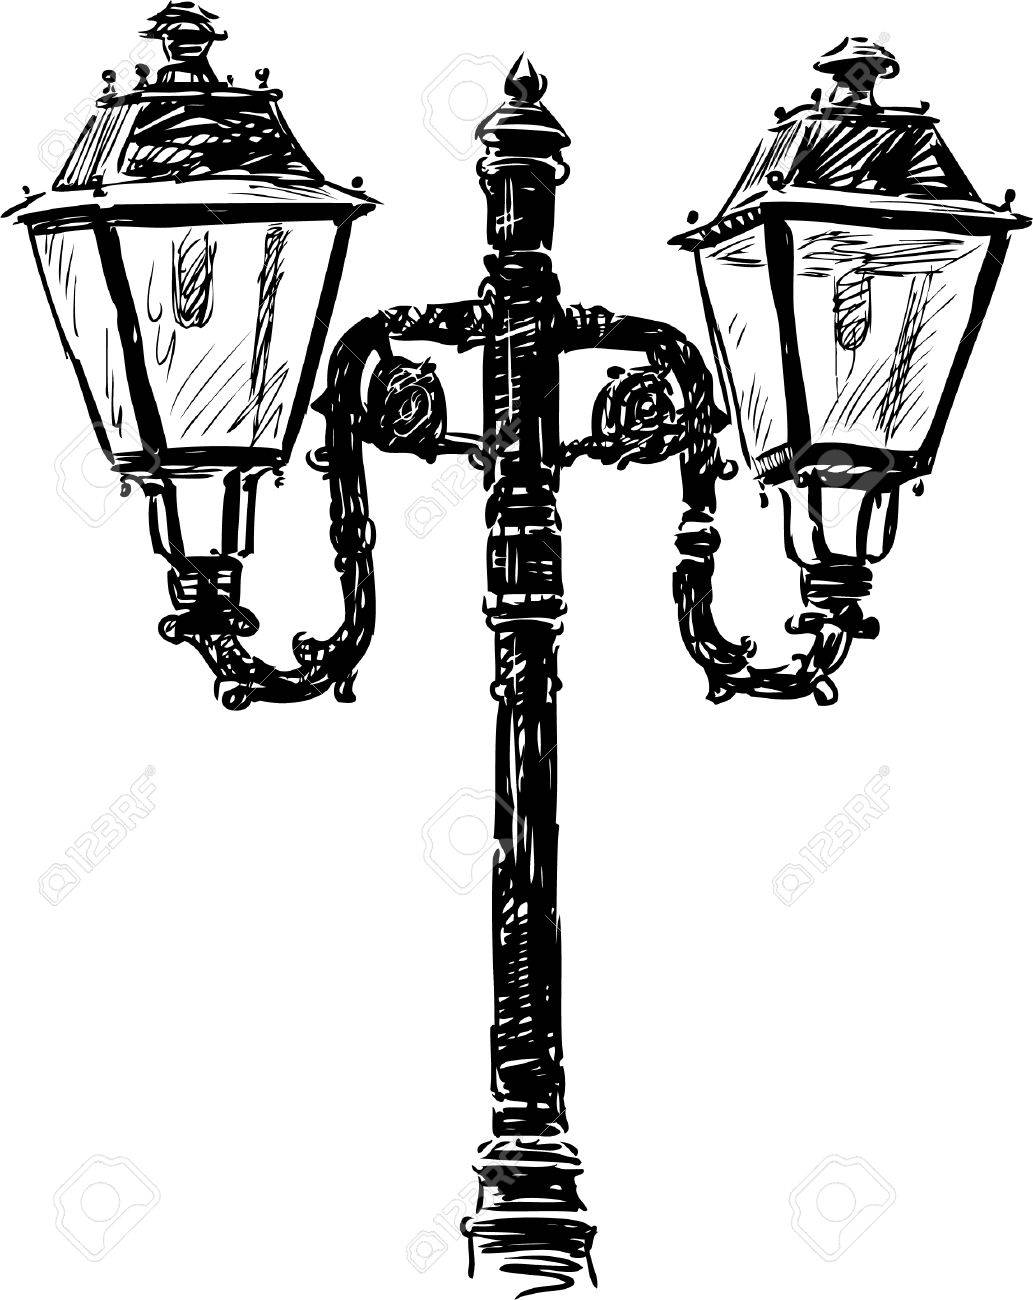 Vector Drawing Of An Old Street Lamp. Royalty Free Cliparts ... for Street Lamp Drawing  150ifm